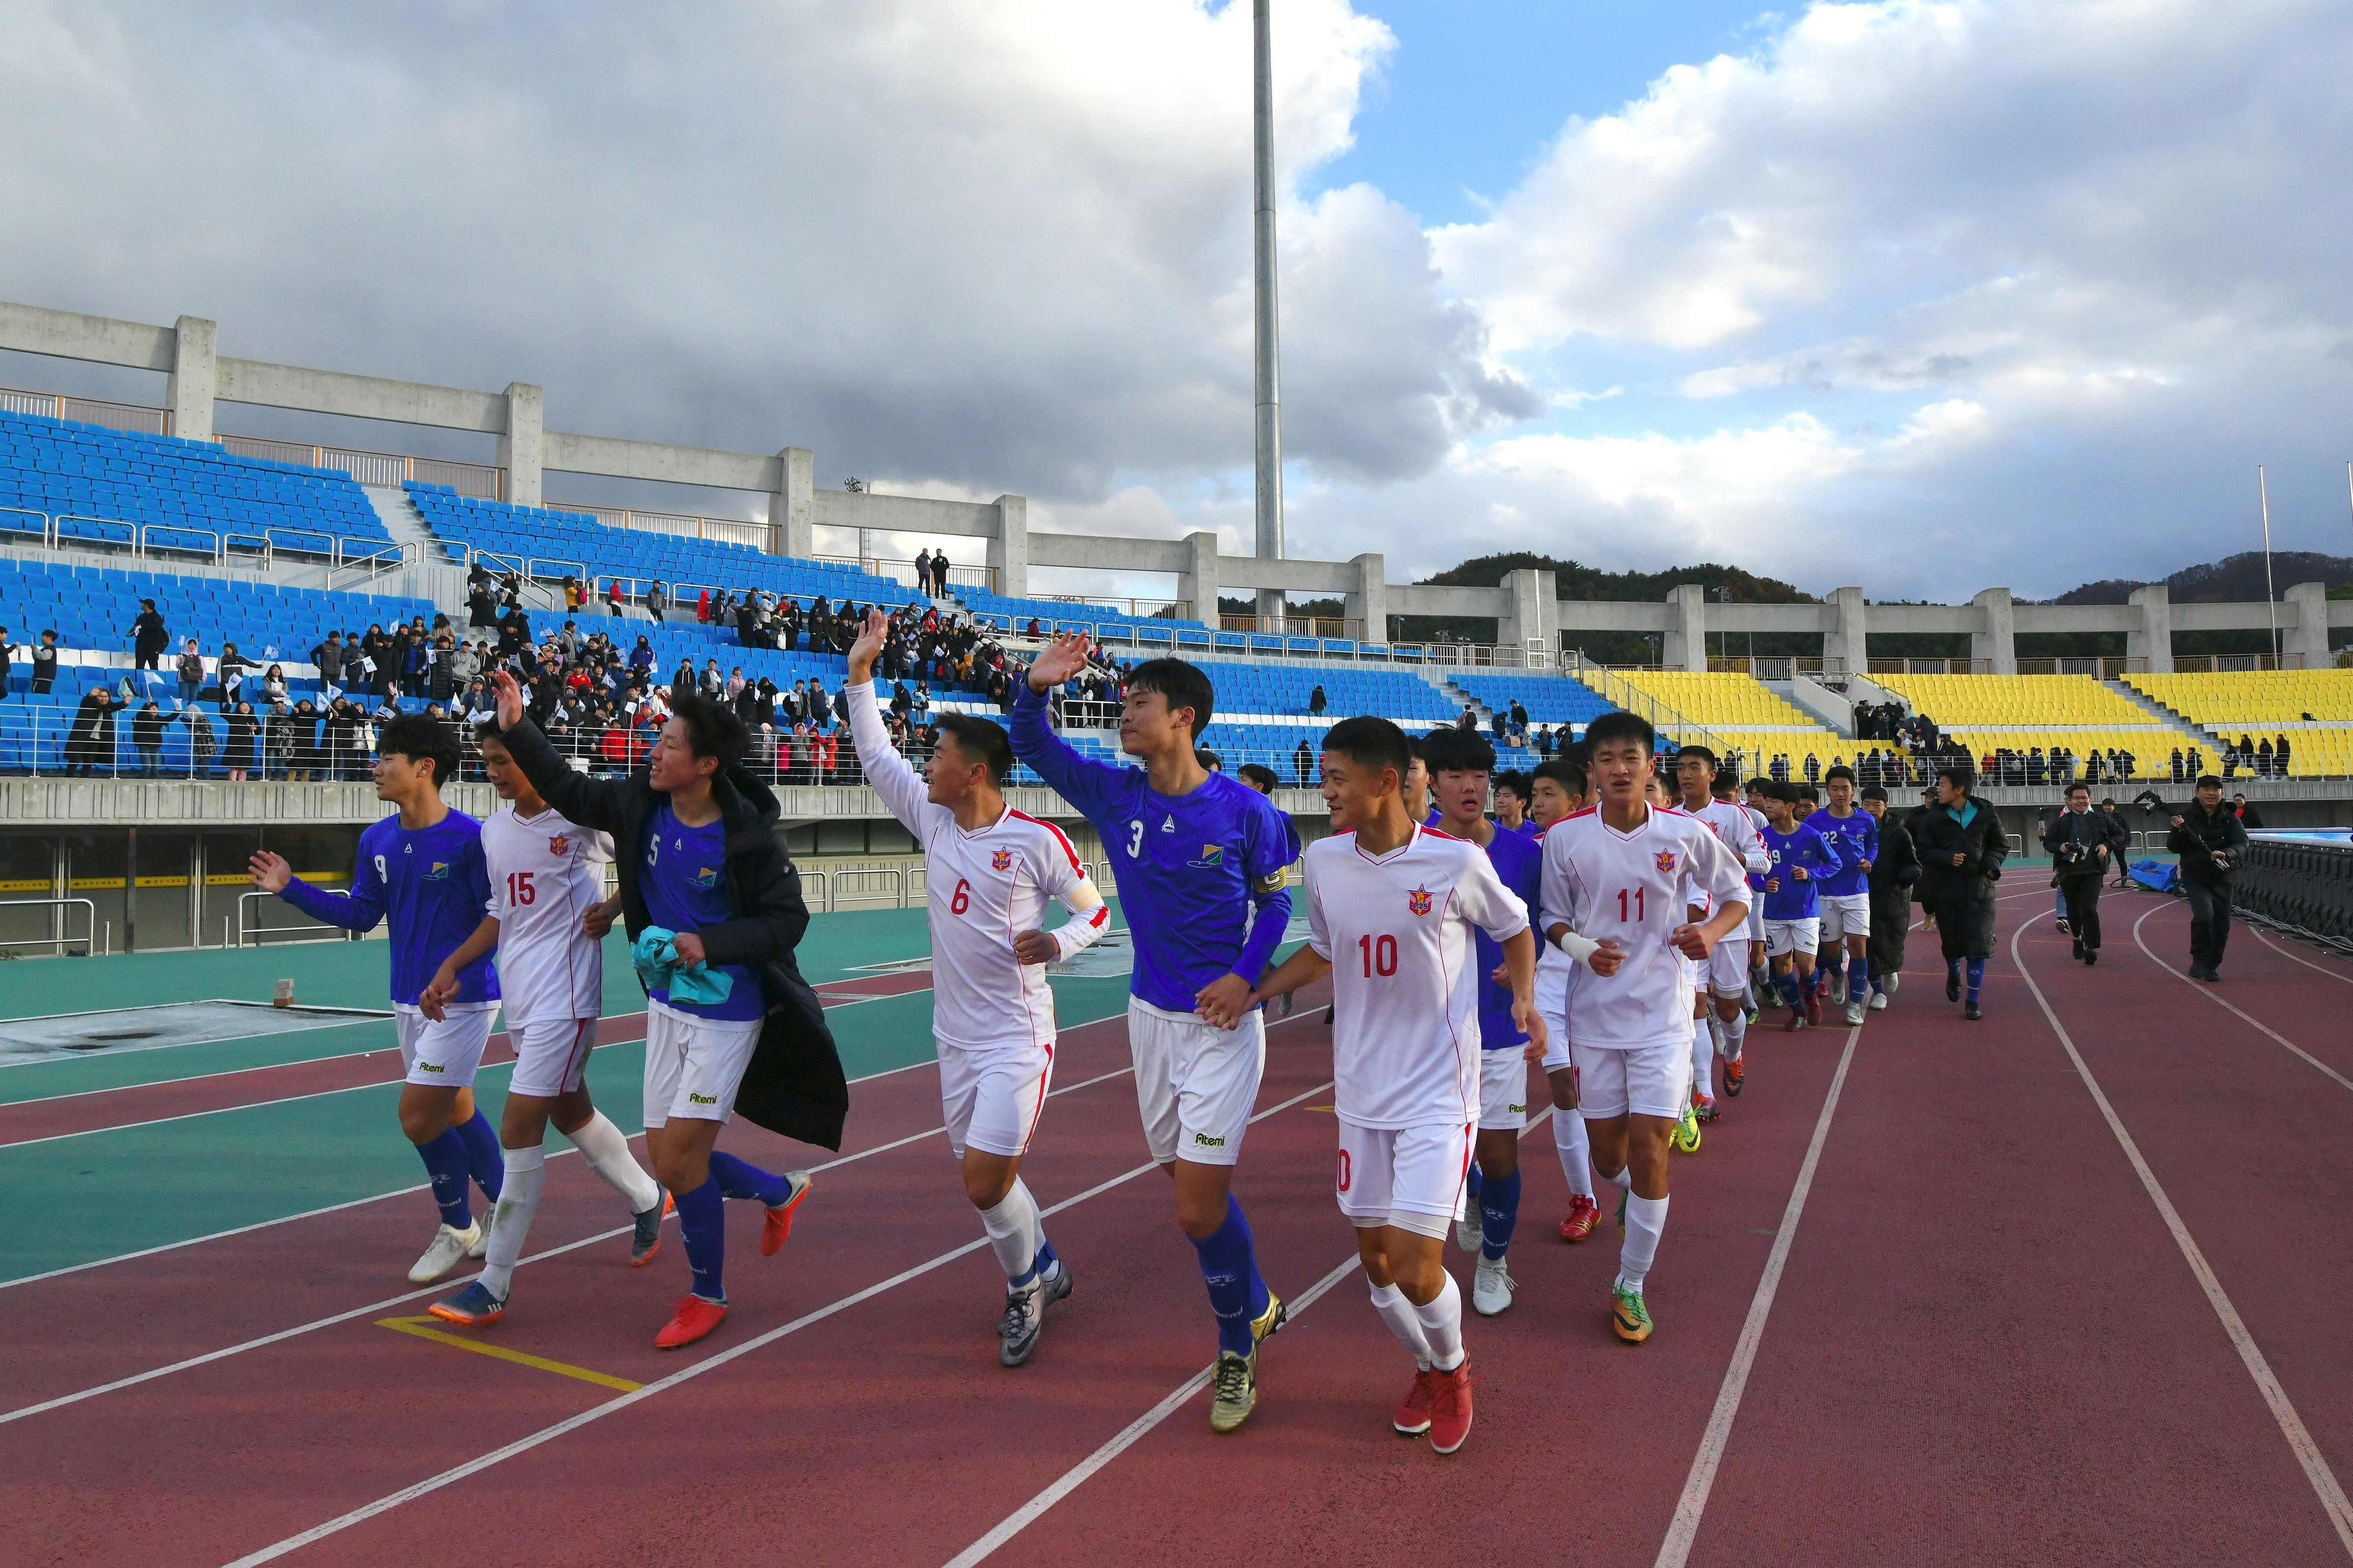 The Vietnamese people are mostly football-mad